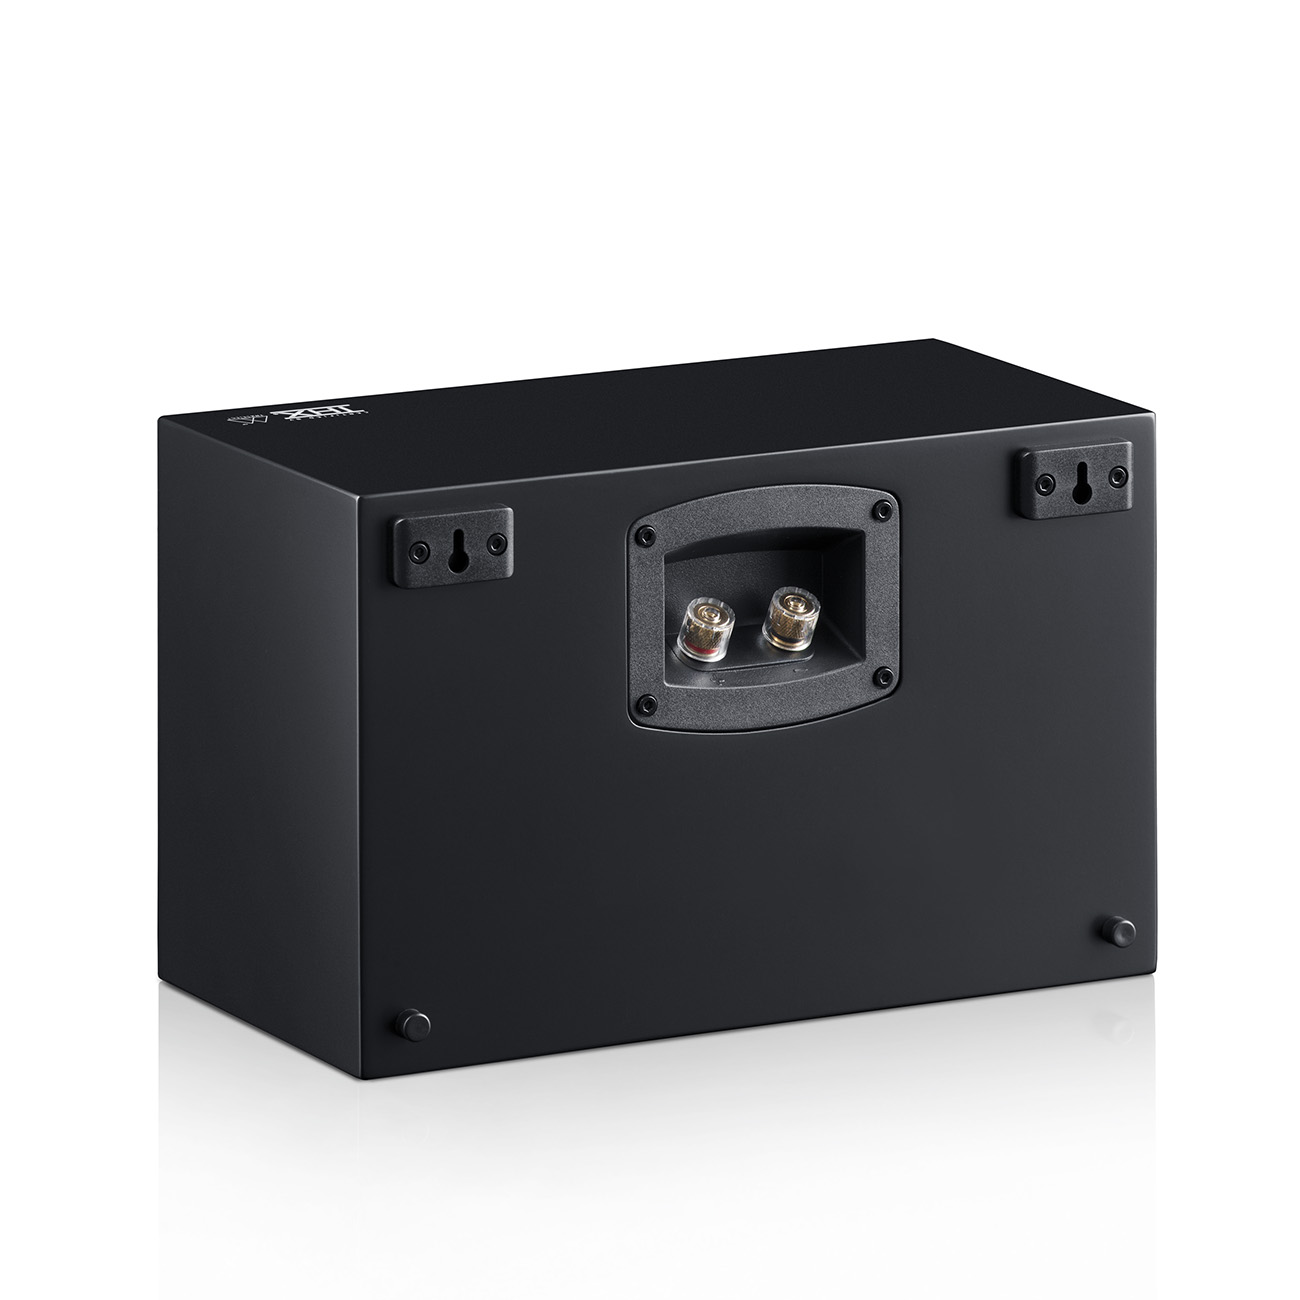 system-6-thx-select-fcr-back-angled-black-1300x1300x72.jpg